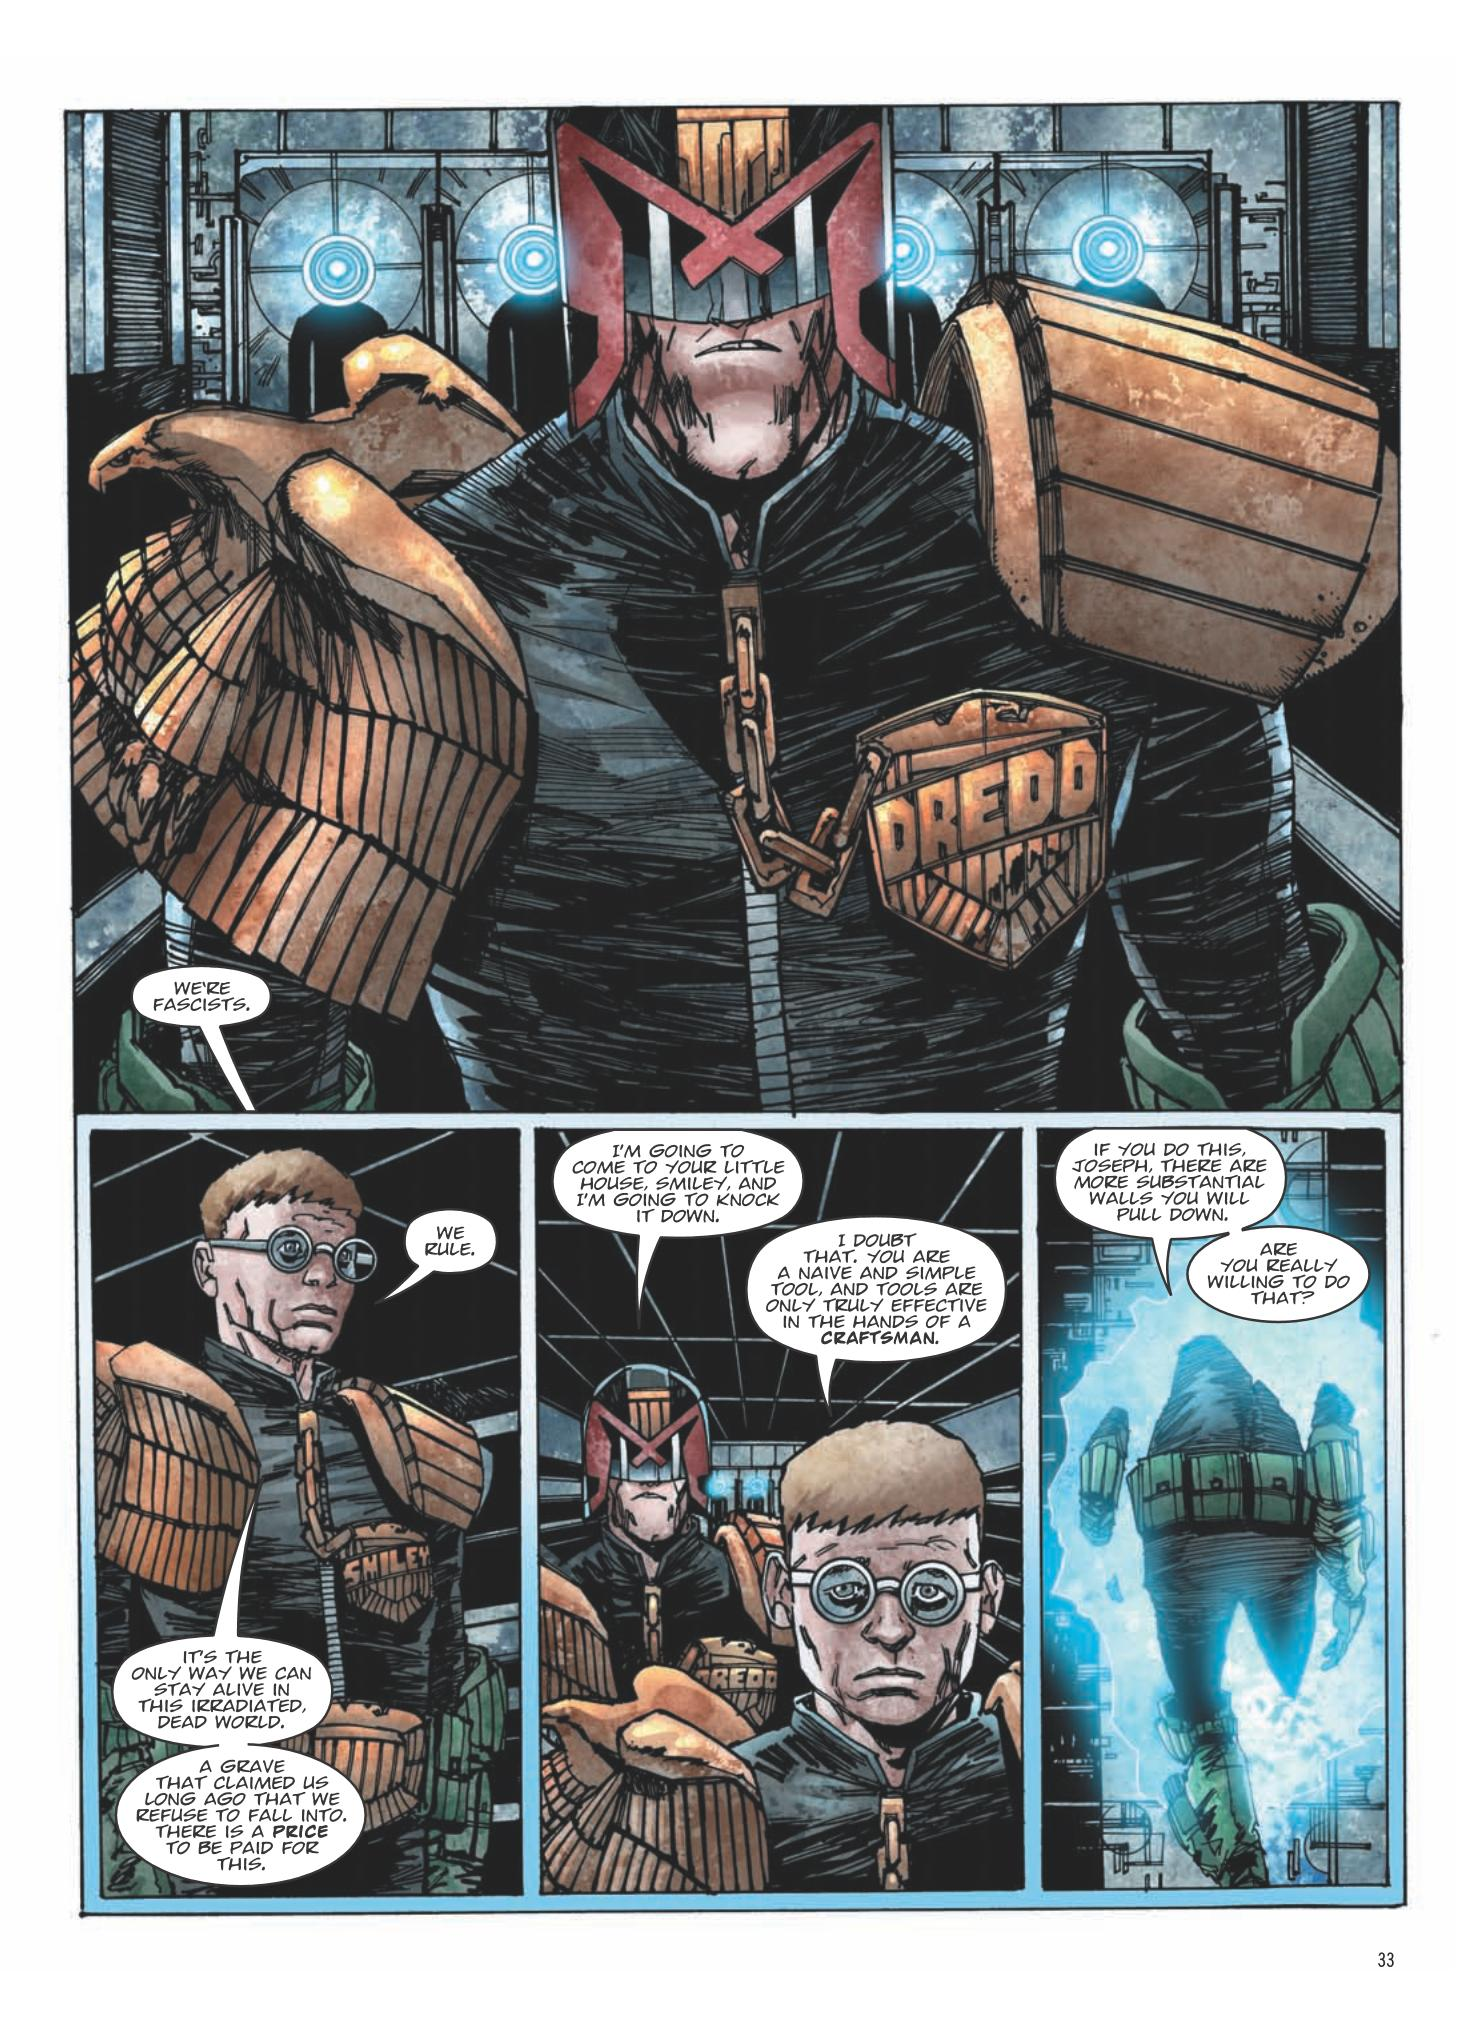 Judge Dredd - The Small House review